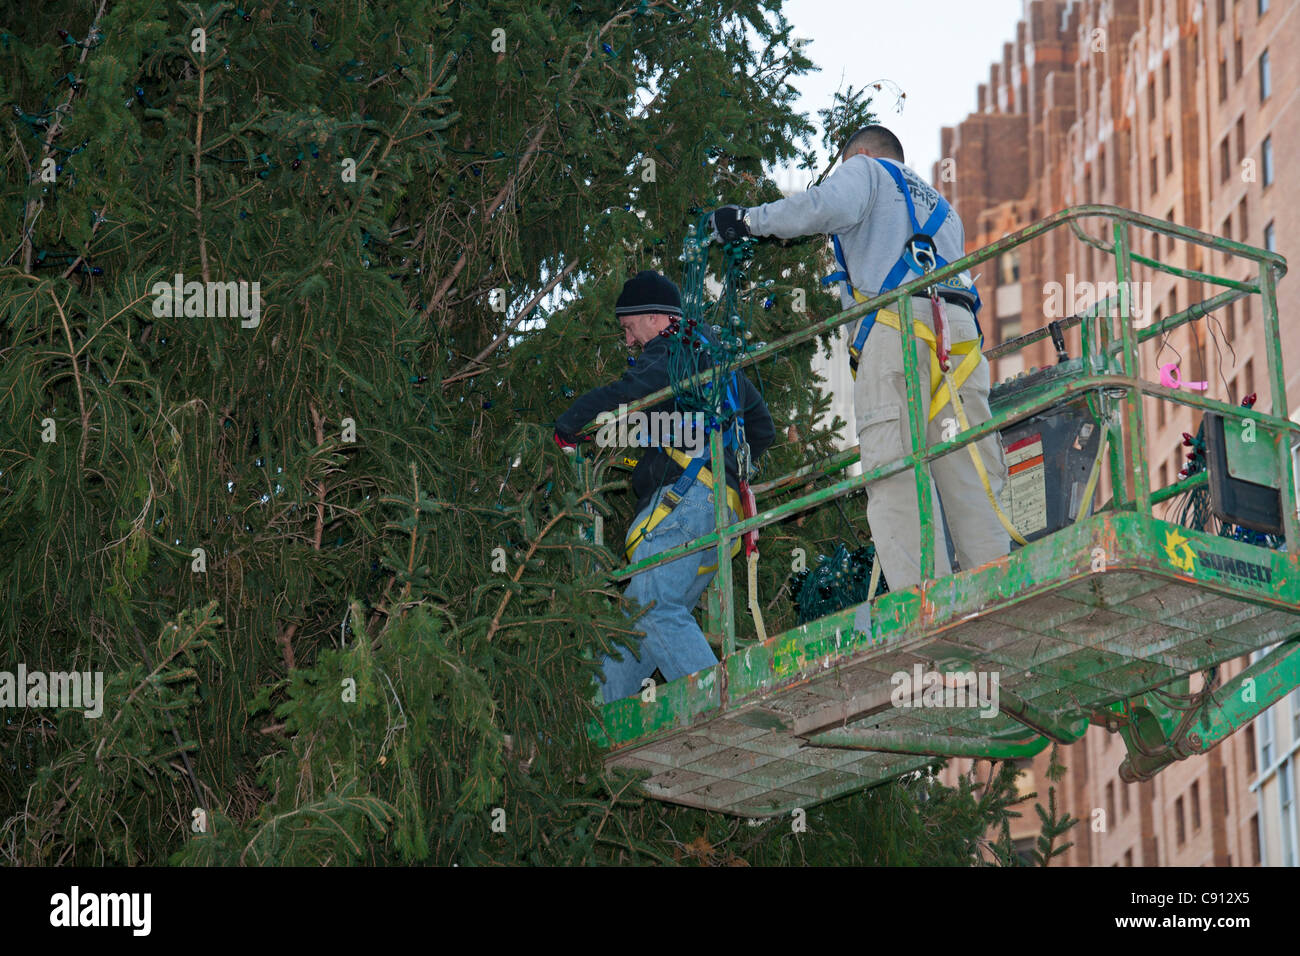 Detroit, Michigan - Workers string lights on a 69-foot Norway spruce Christmas tree in Campus Martius Park. - Stock Image